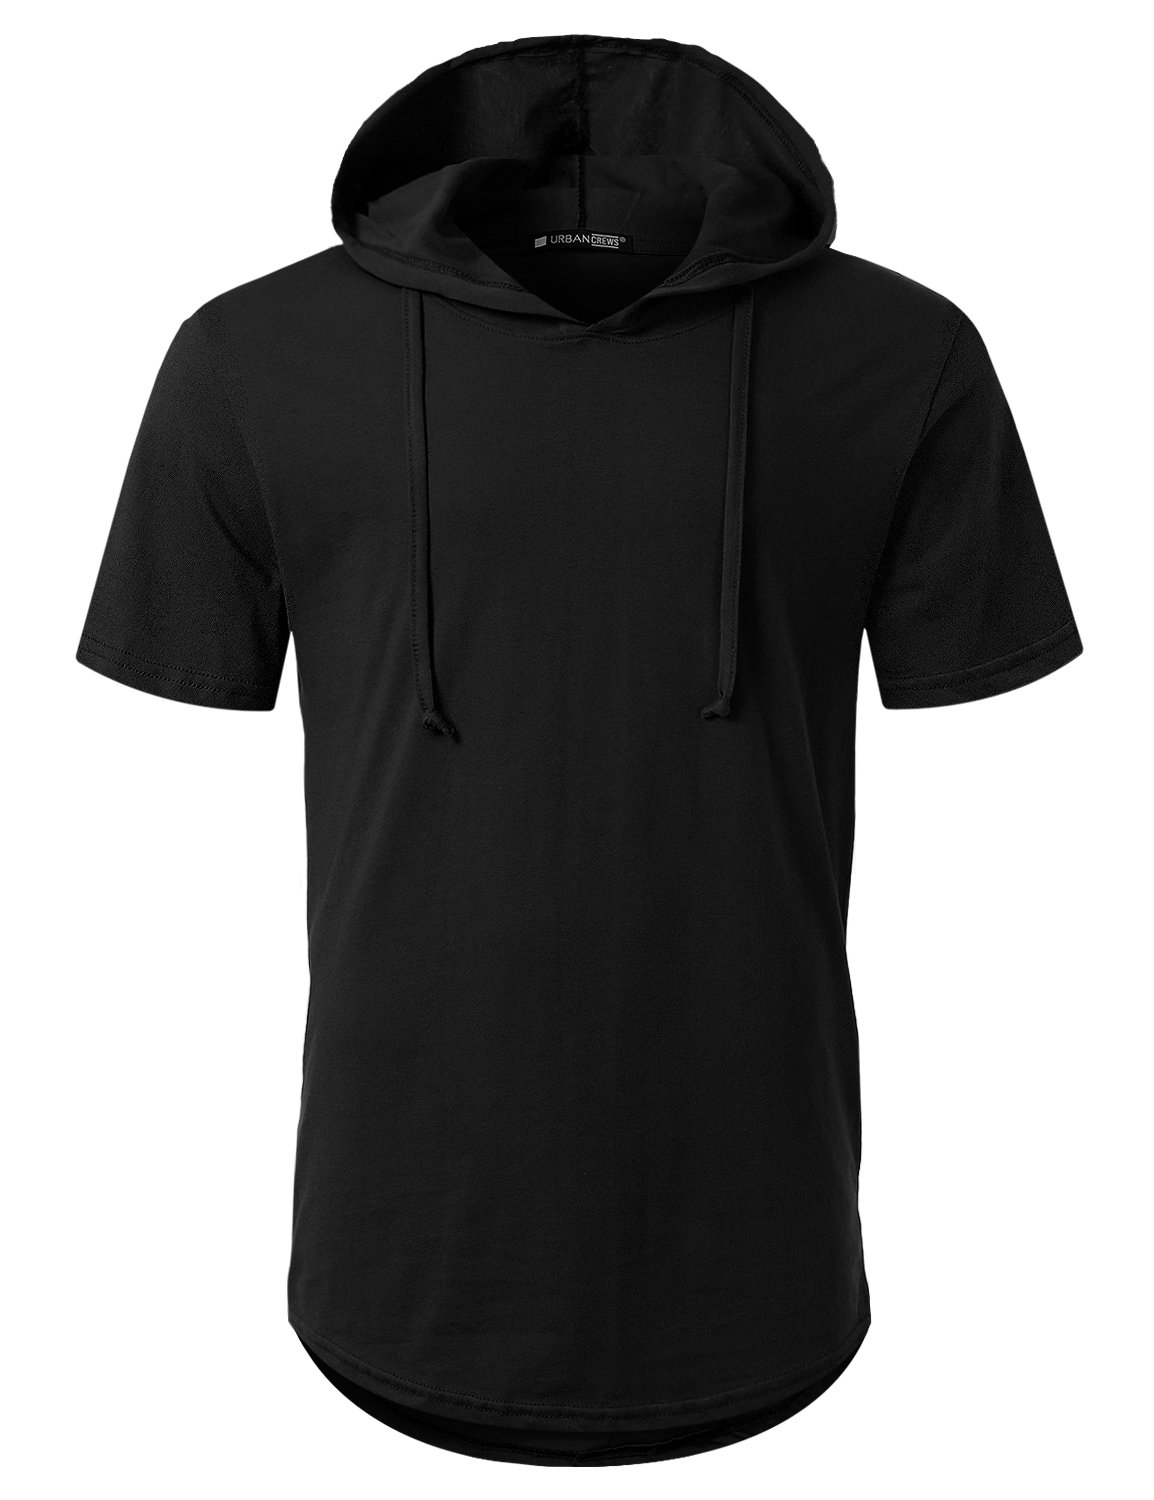 URBANCREWS Mens Hipster Hip Hop Longline Pullover Short Sleeve Hooded Shirt